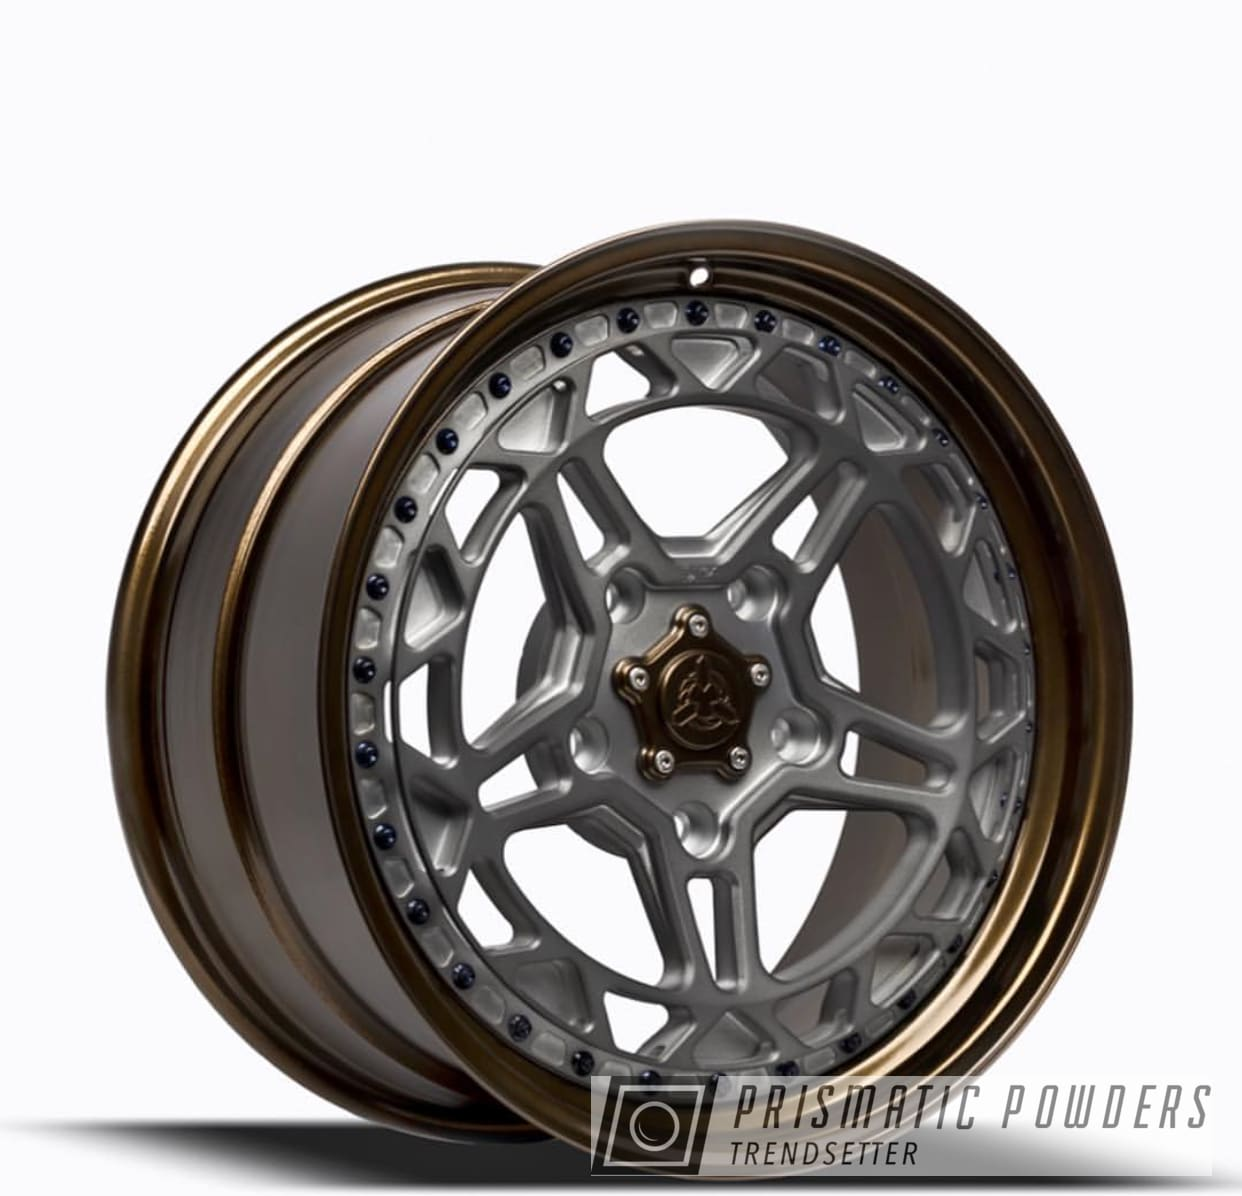 Powder Coating: Wheels,Rim,Black Chrome II PPB-4623,Automotive,Custom Wheels